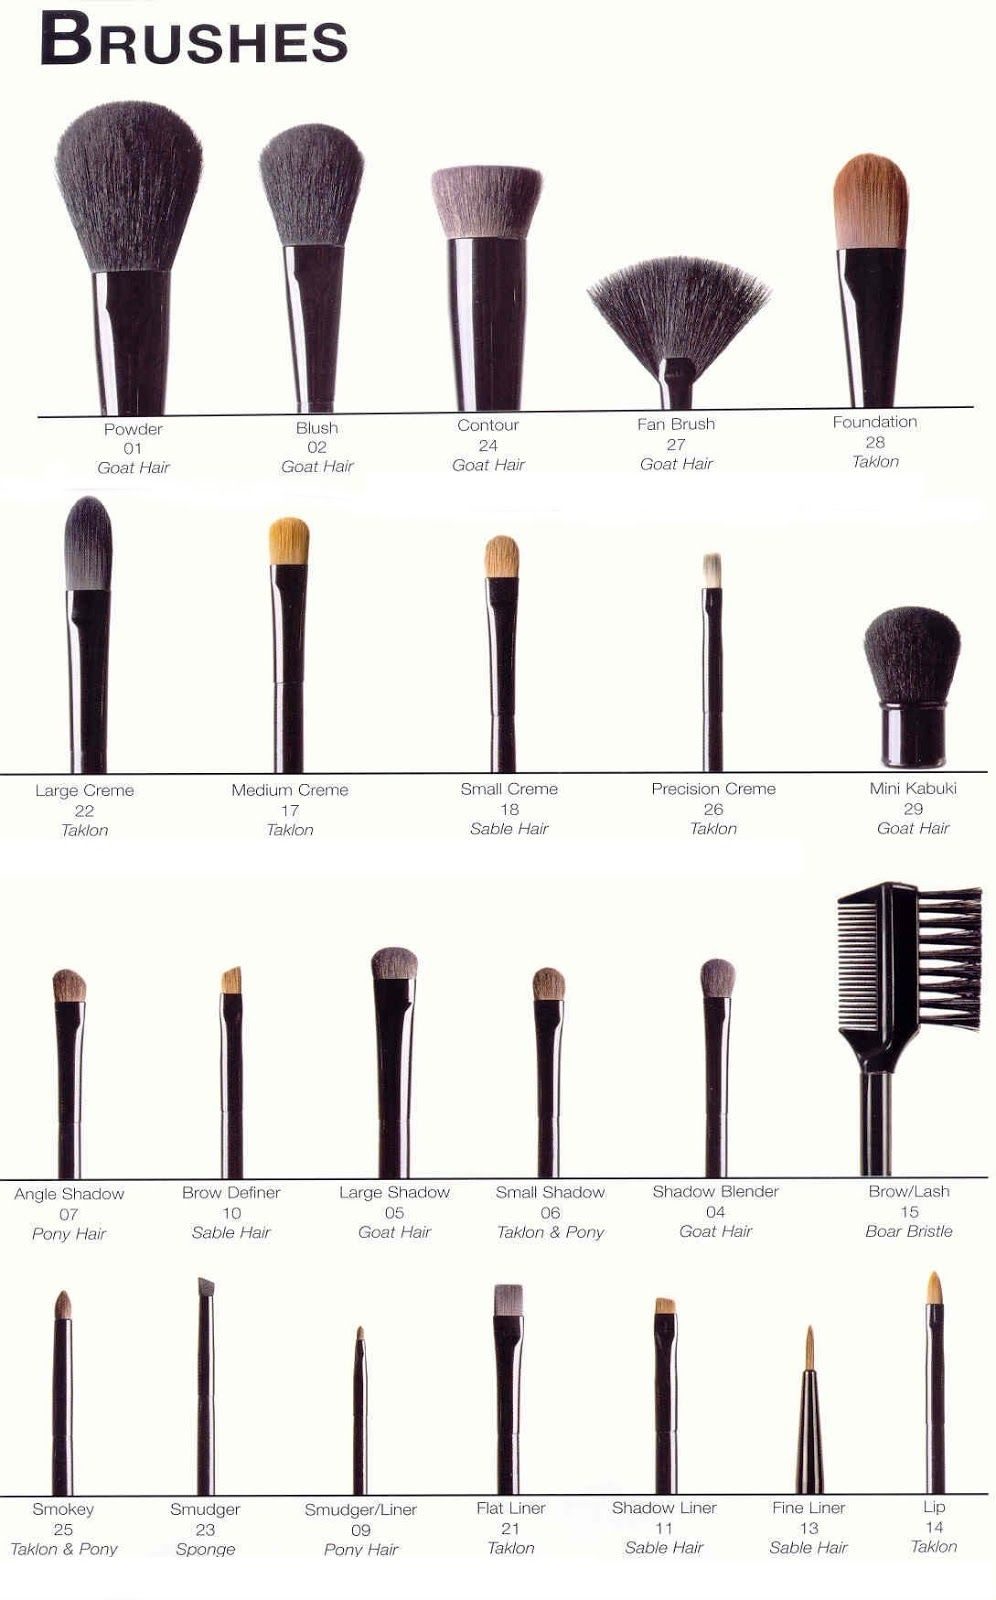 AVON makeup brushes to AVON the official site